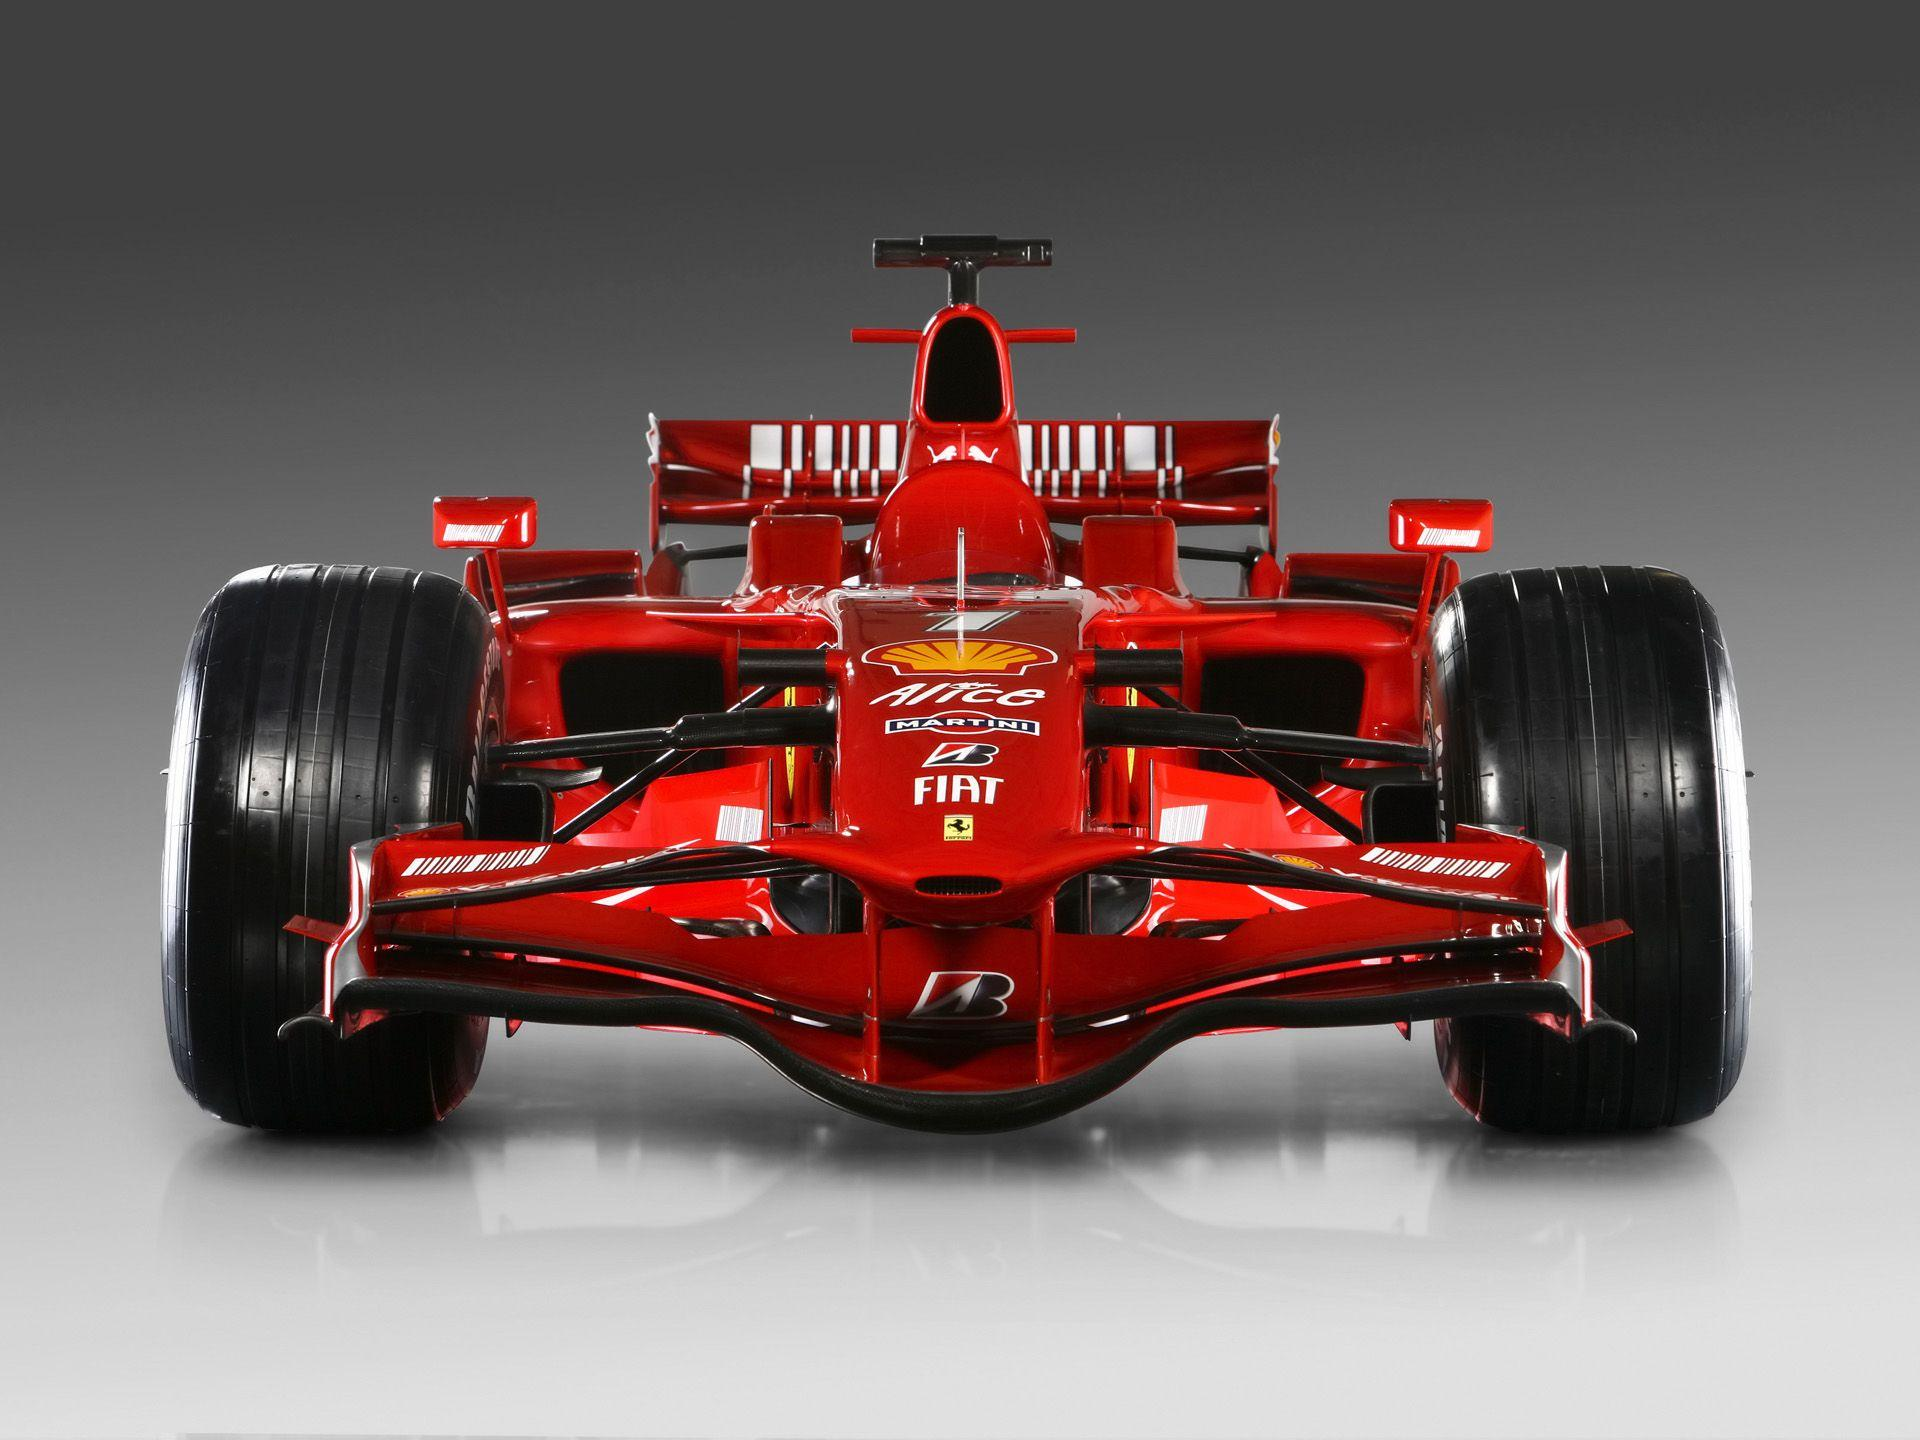 F1 Ferrari Wallpapers Wallpaper Cave